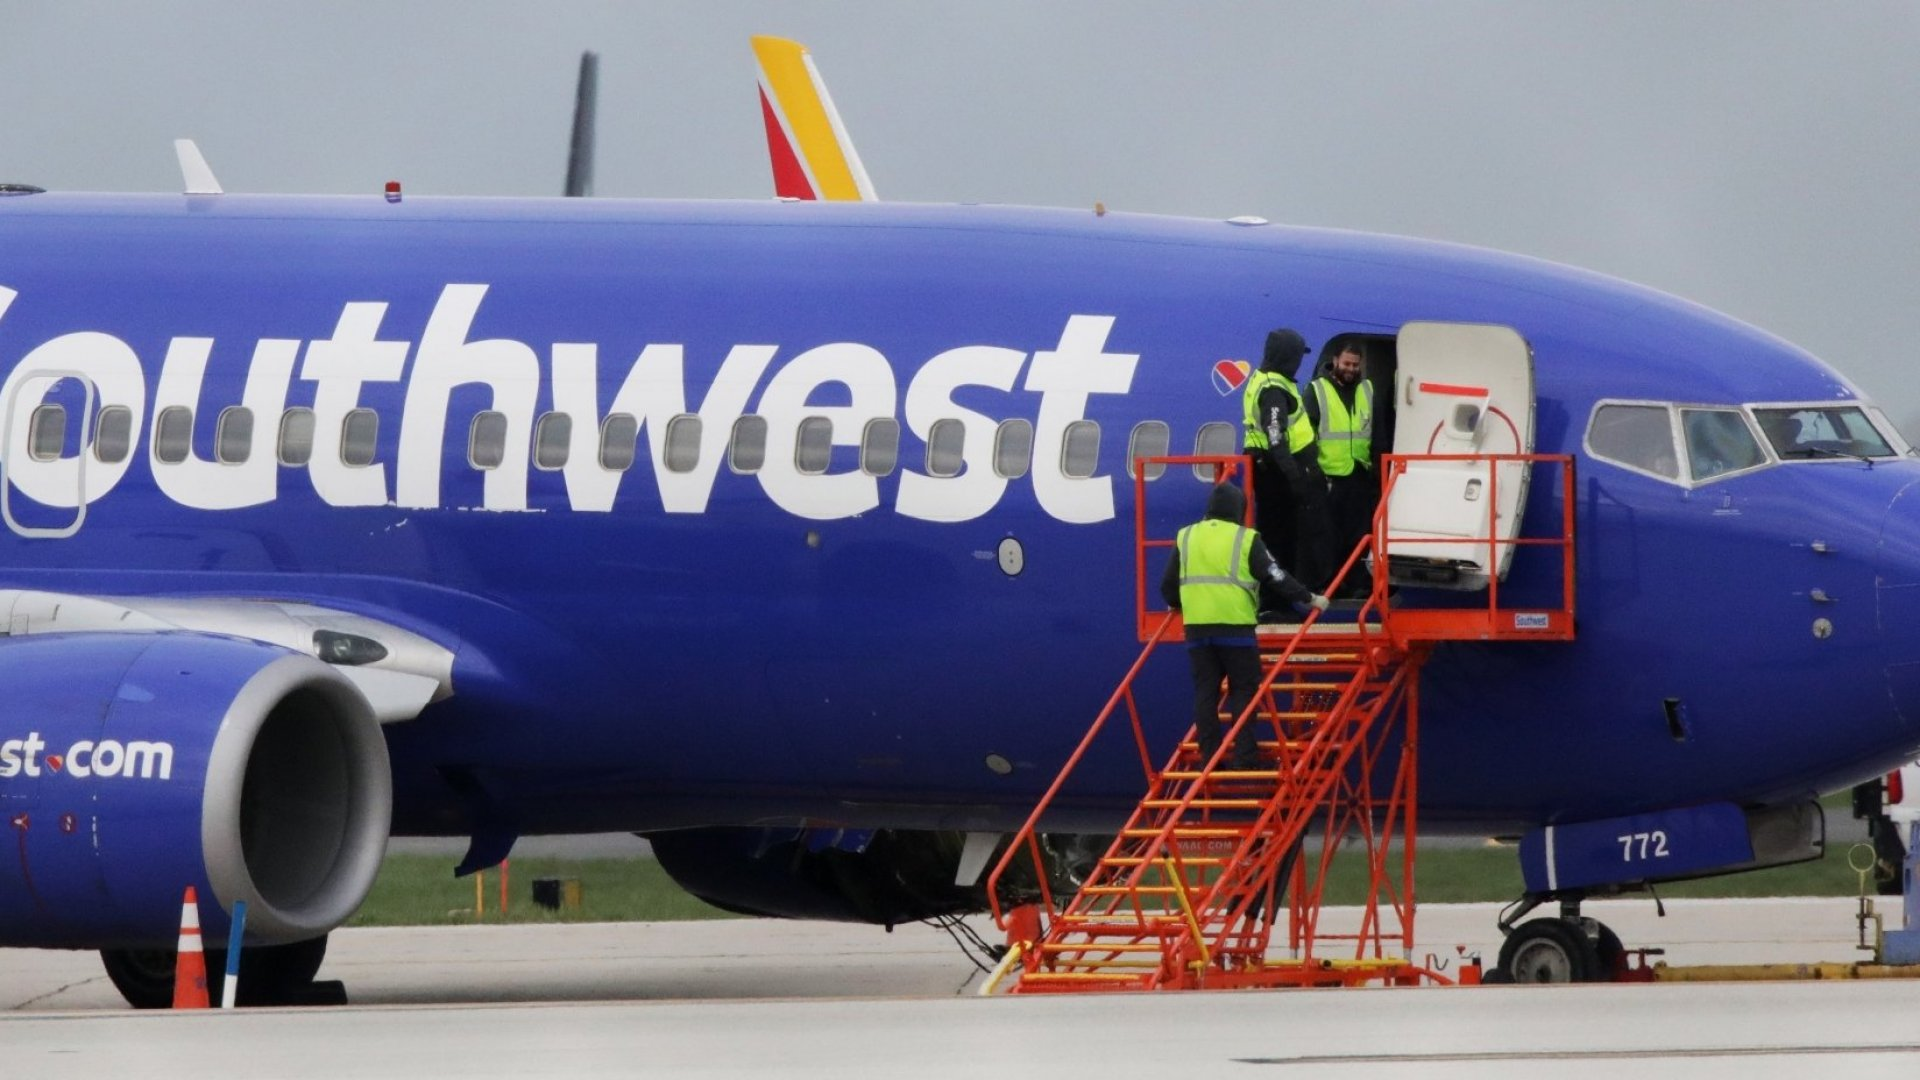 How My Community Is Mourning the Loss of a Beloved Leader After the Deadly Southwest Airlines Malfunction